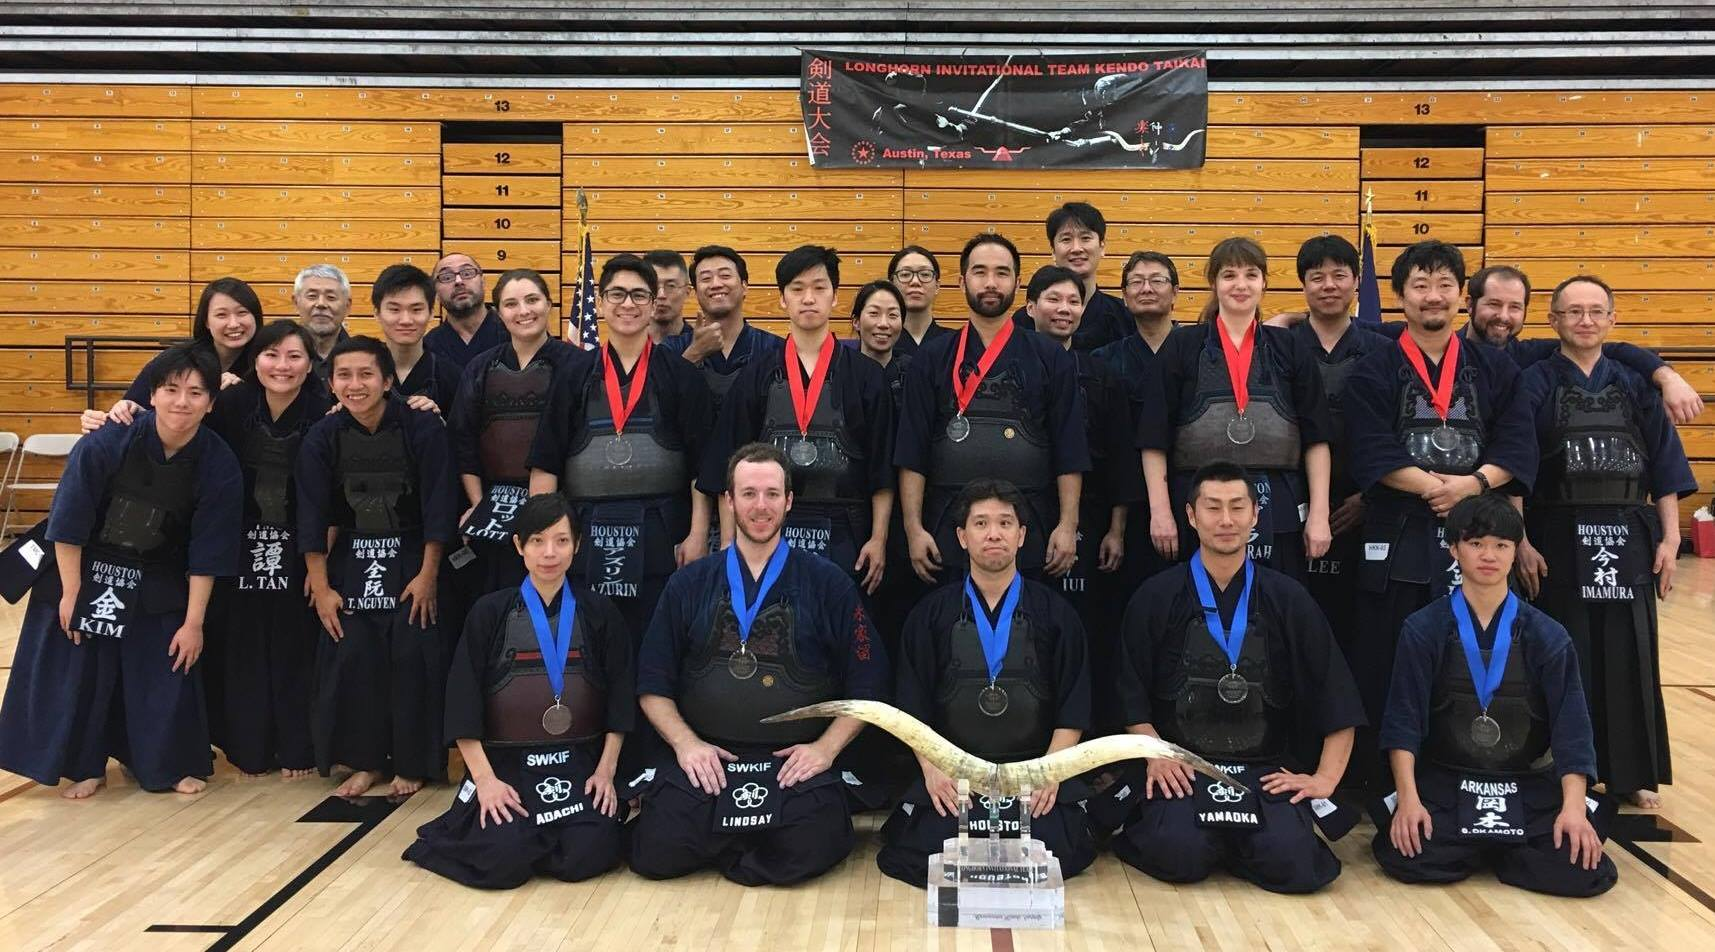 SWKIF team with Houston Sensei and Adachi Sensei took 1st place at the 2017 Longhorn Tournament. HKK A team took 2nd place.